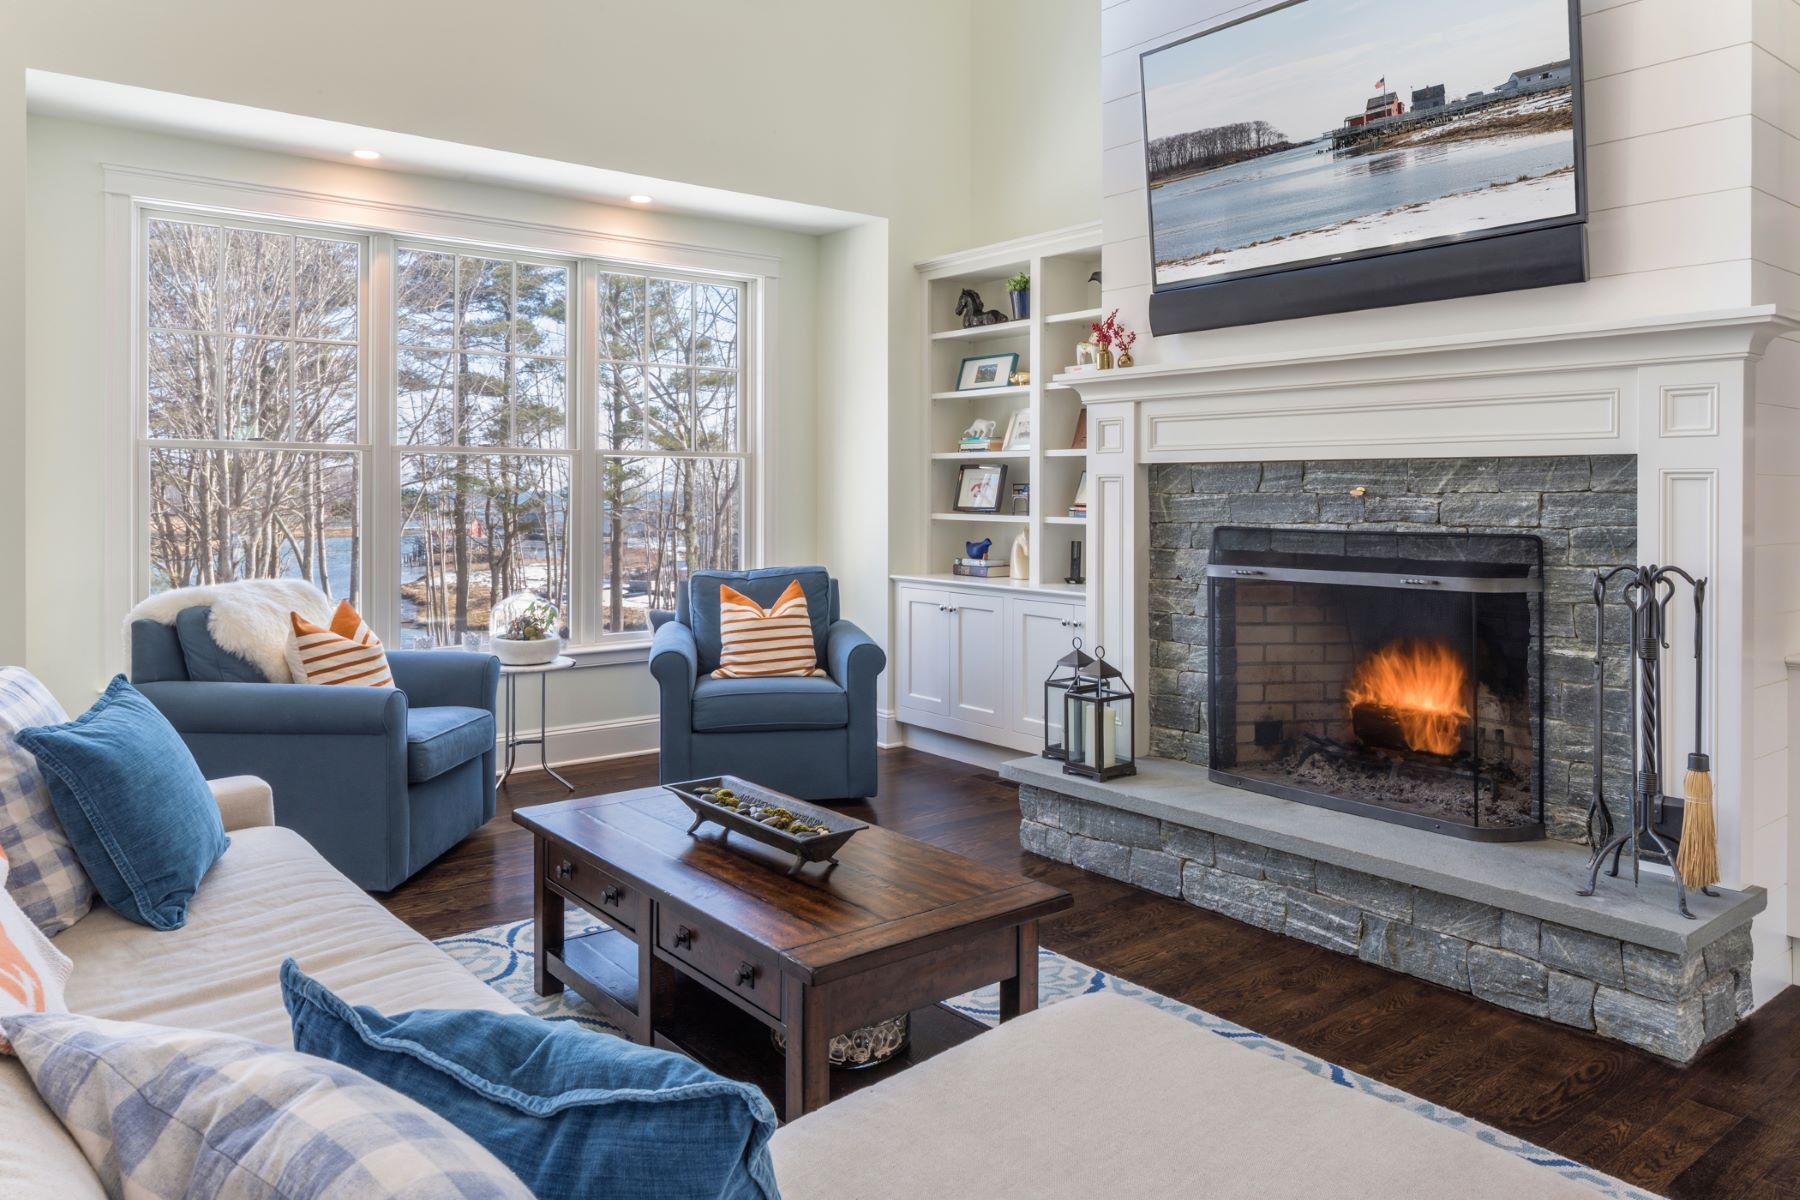 Additional photo for property listing at 22 Ebs Cove Lane 22 Ebs Cove Lane Kennebunkport, Maine 04046 United States